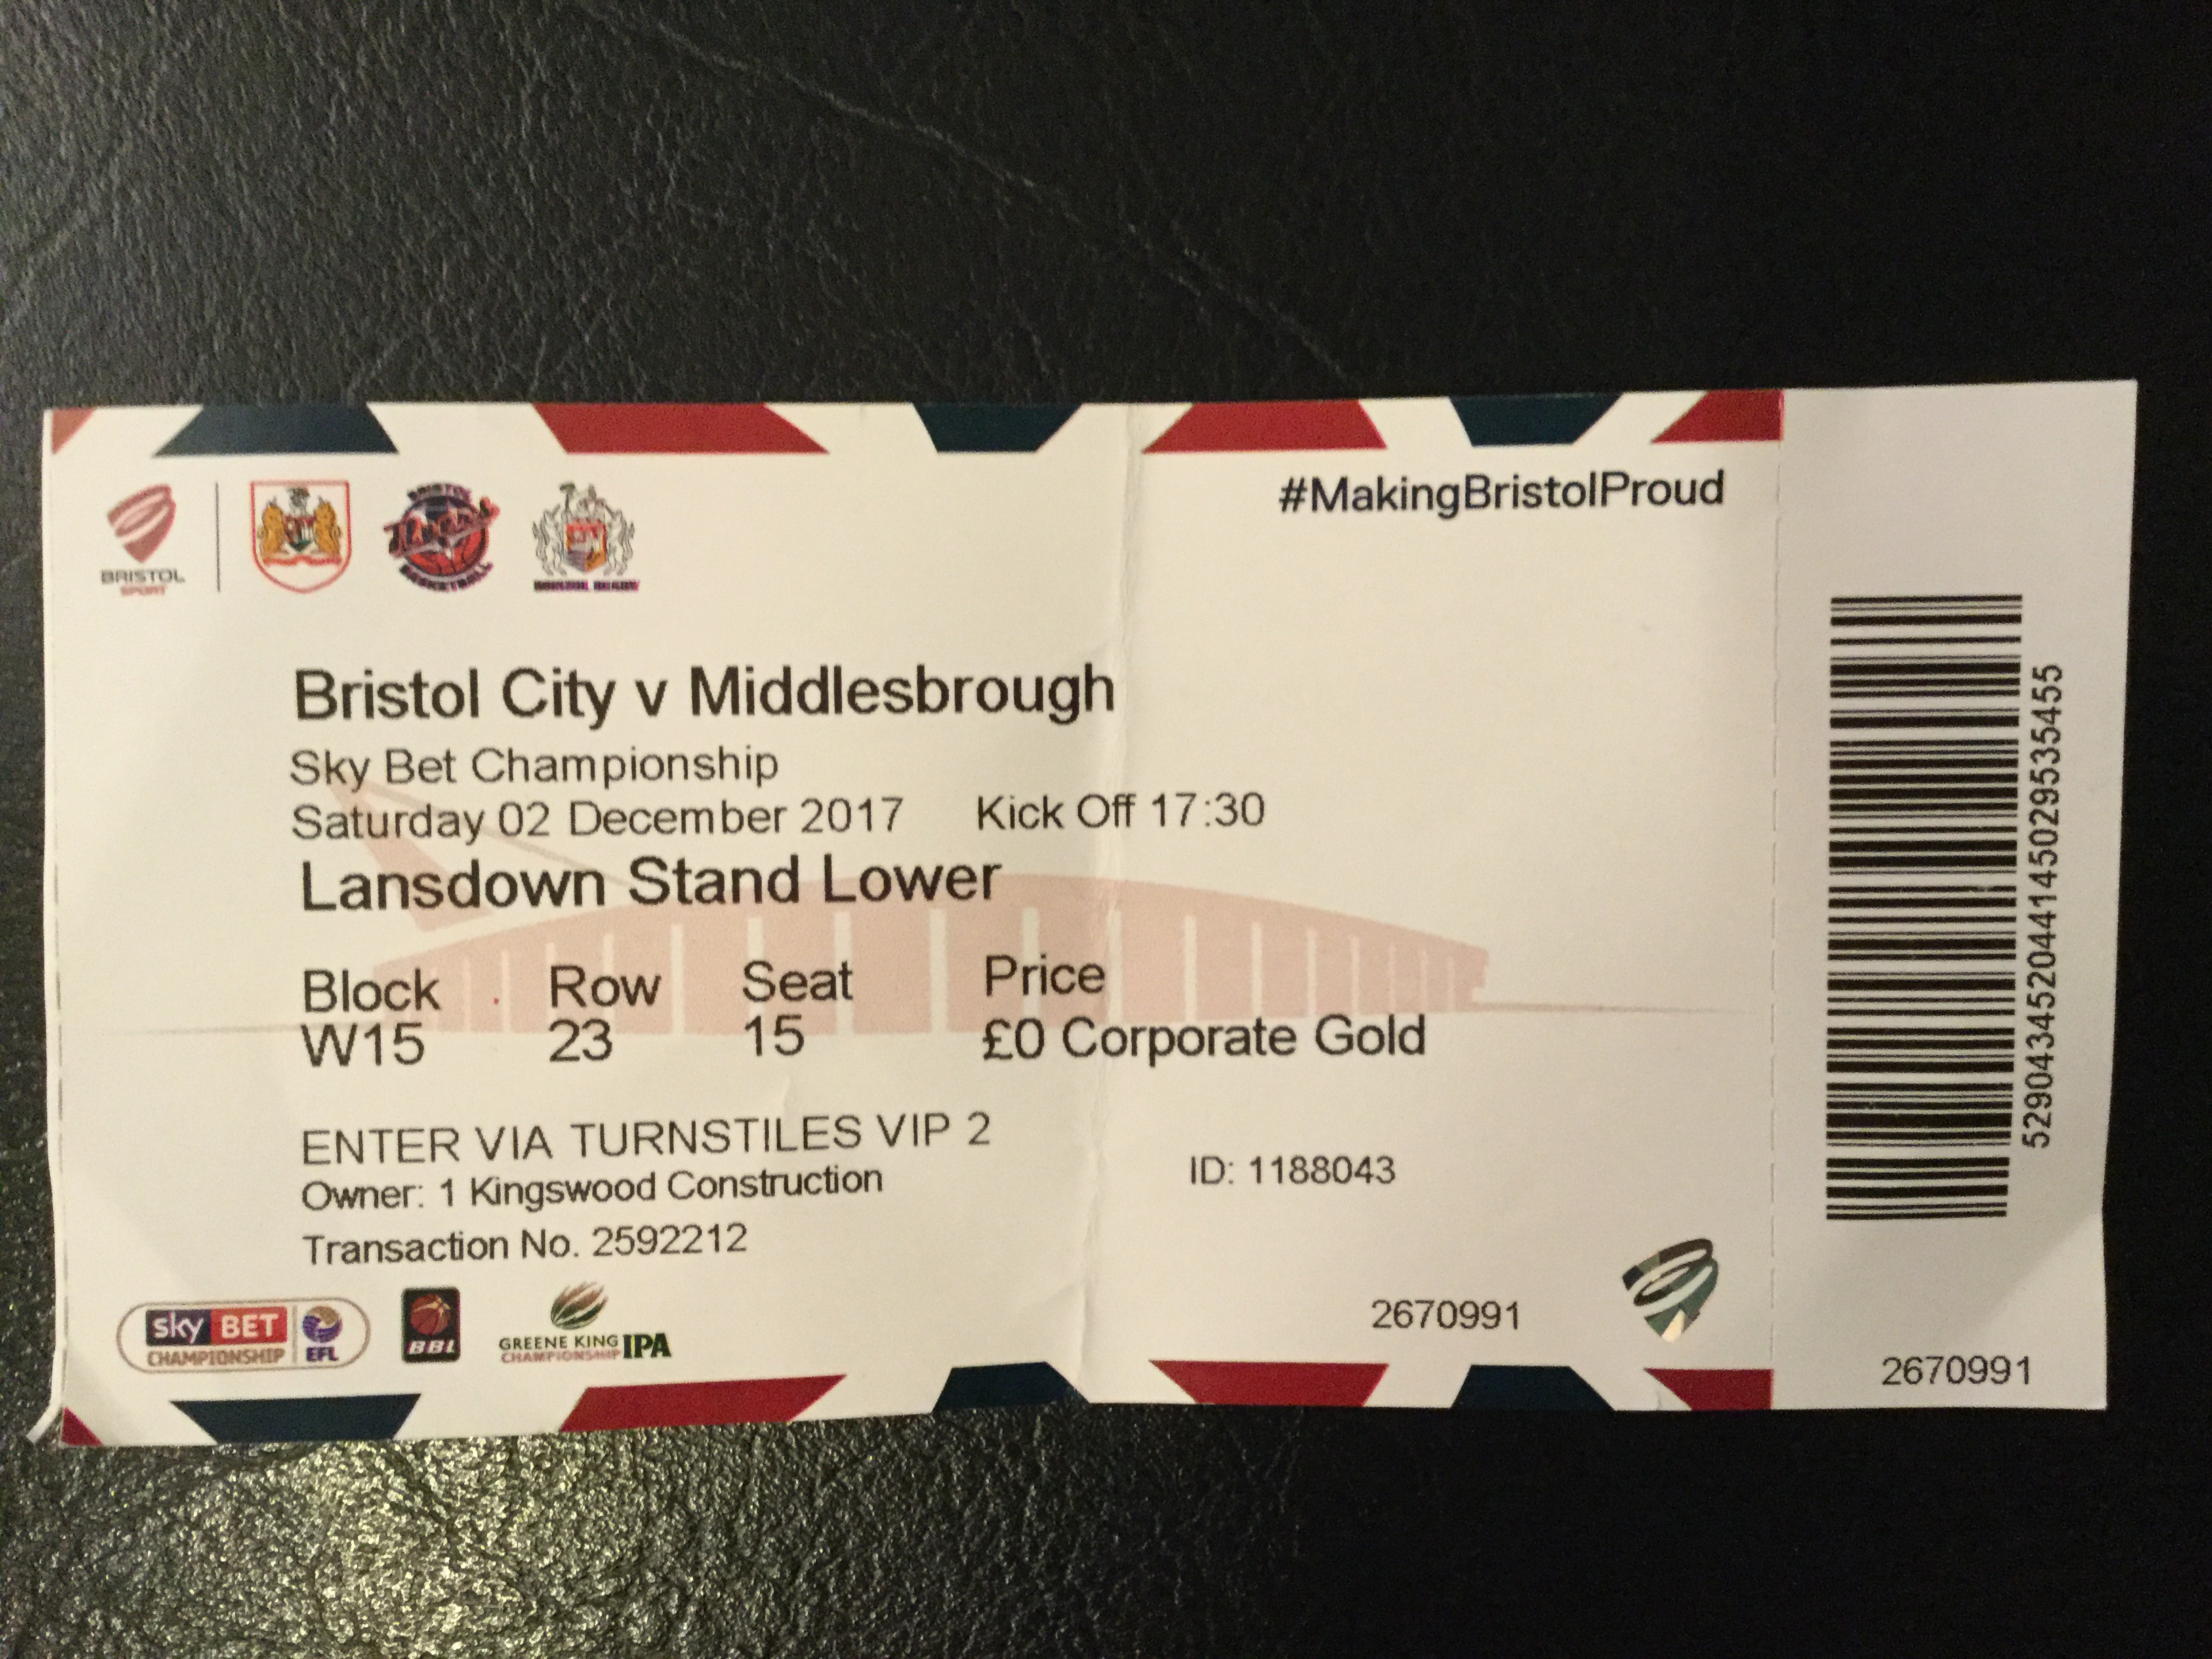 Bristol City v Middlesbrough 02-12-2017 Ticket